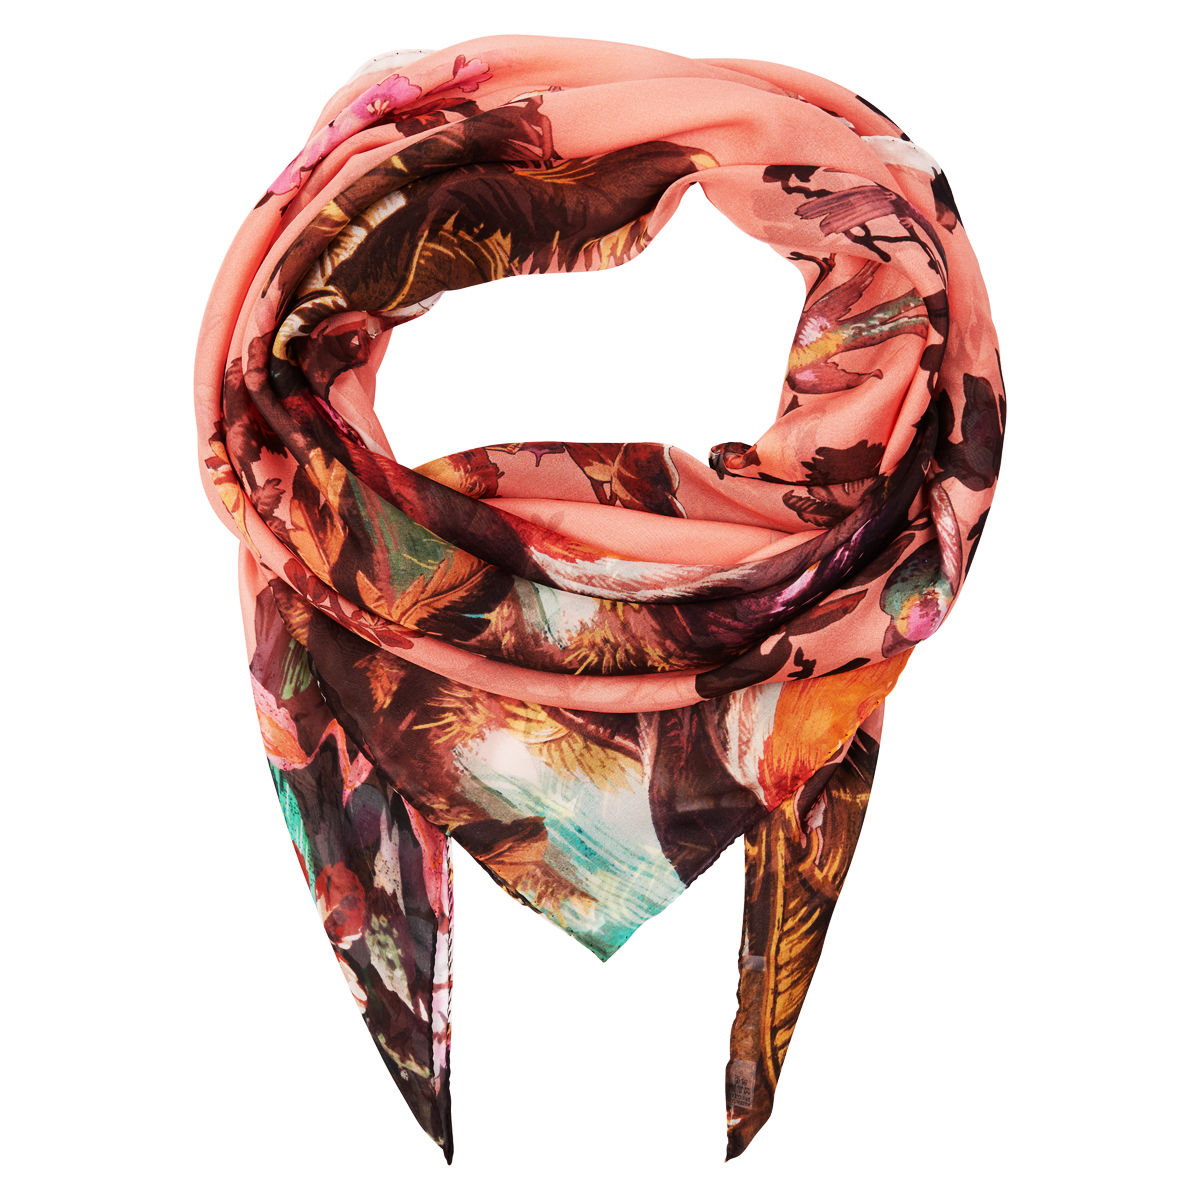 Large scarf in Volcano Hazed Sunset - product images  of